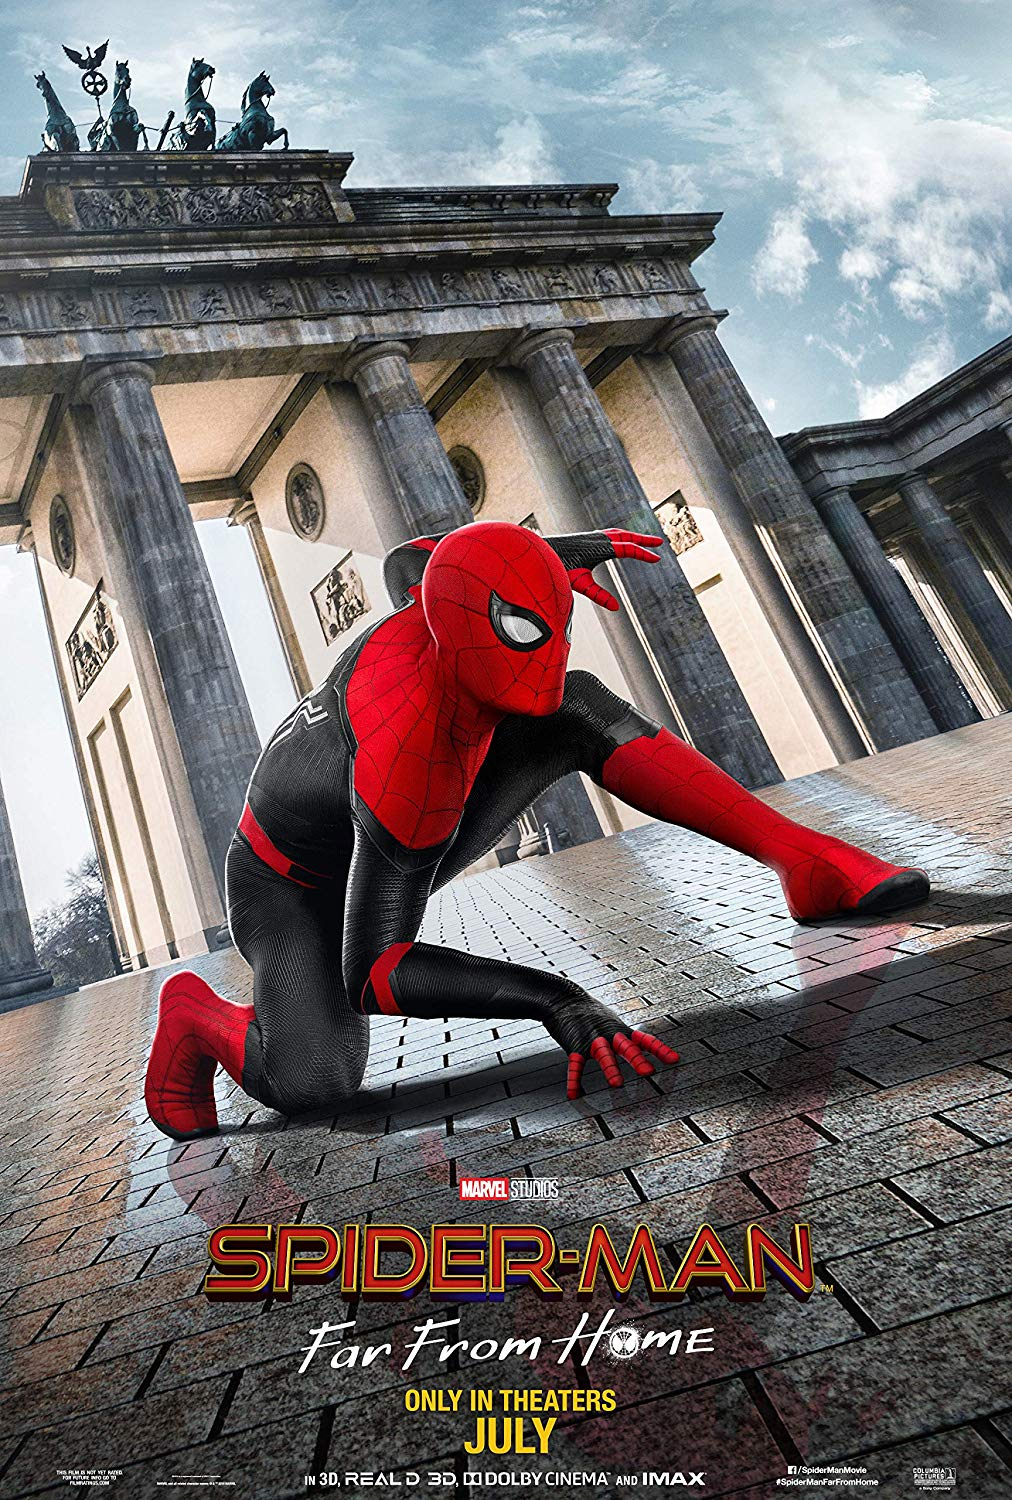 Spider-Man: Far From Home was released June 26, 2019. It is the most current Marvel produced film, grossing over one billion dollars in the box office.